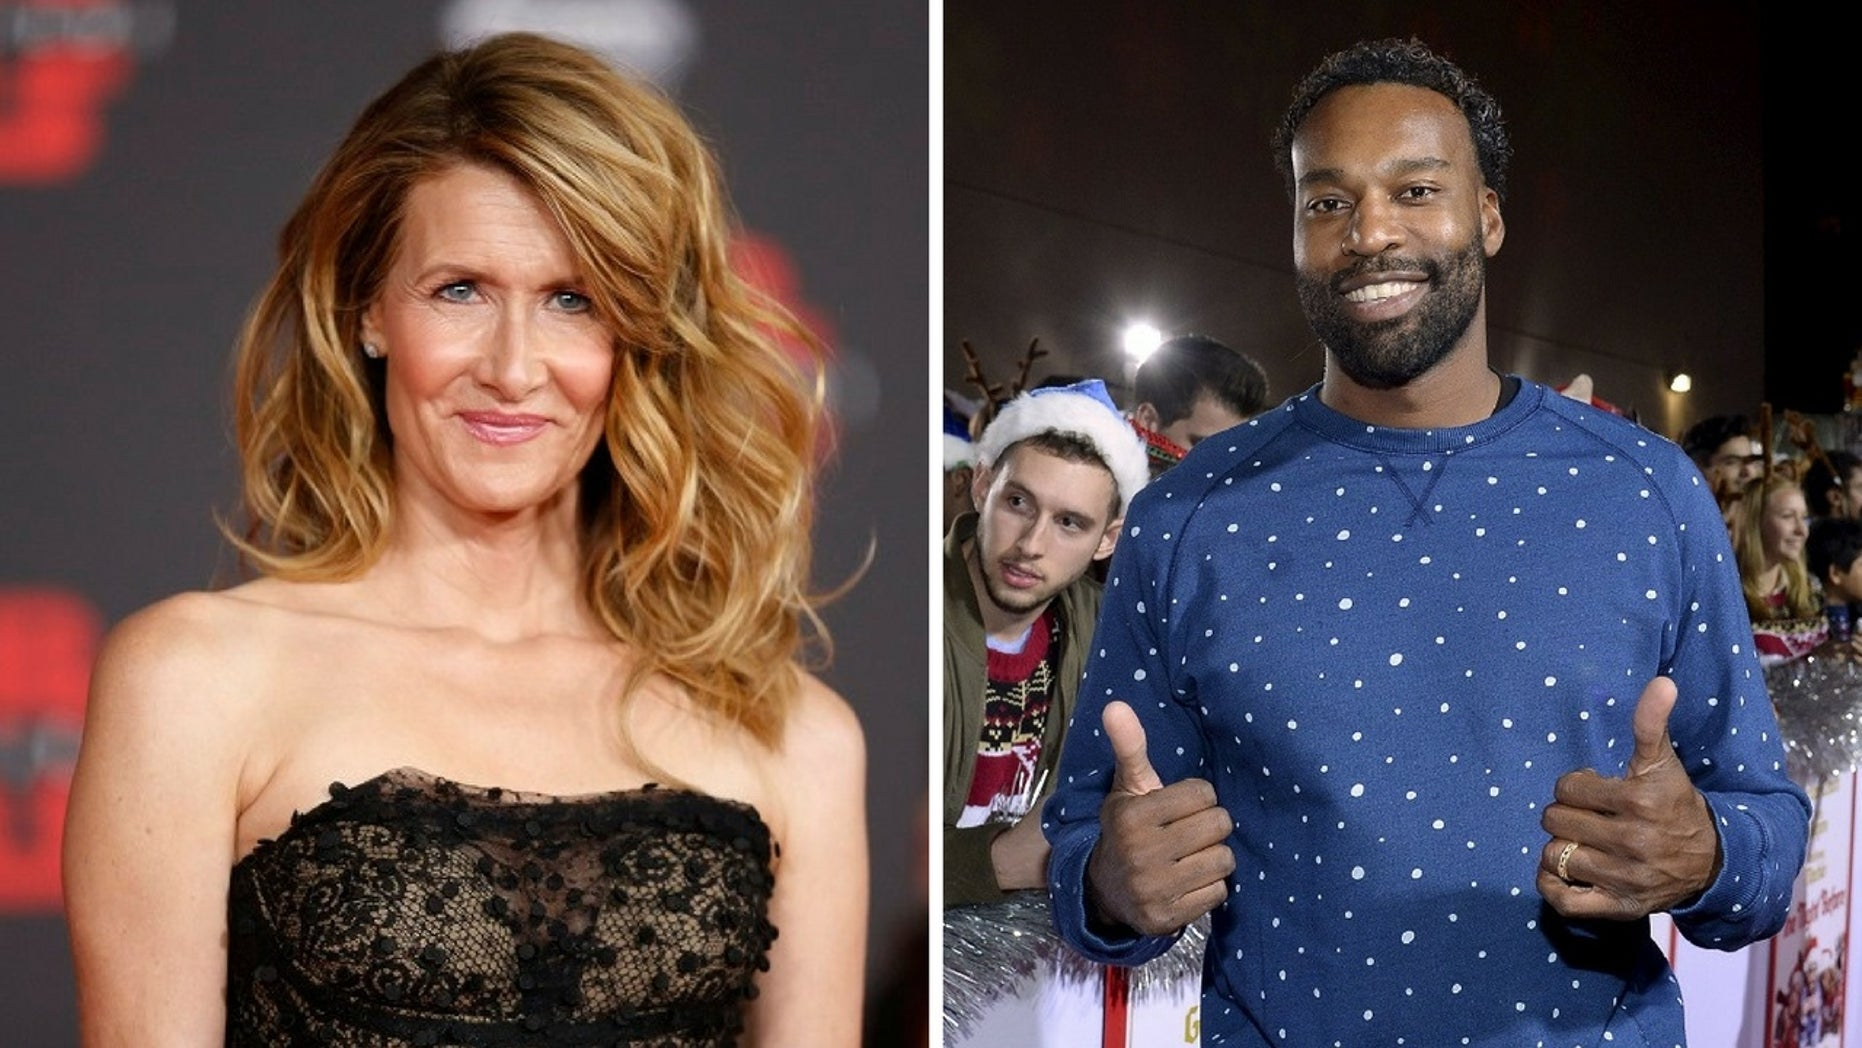 Laura Dern and Baron Davis were spotted together having a romantic lunch last week in Beverly Hills.